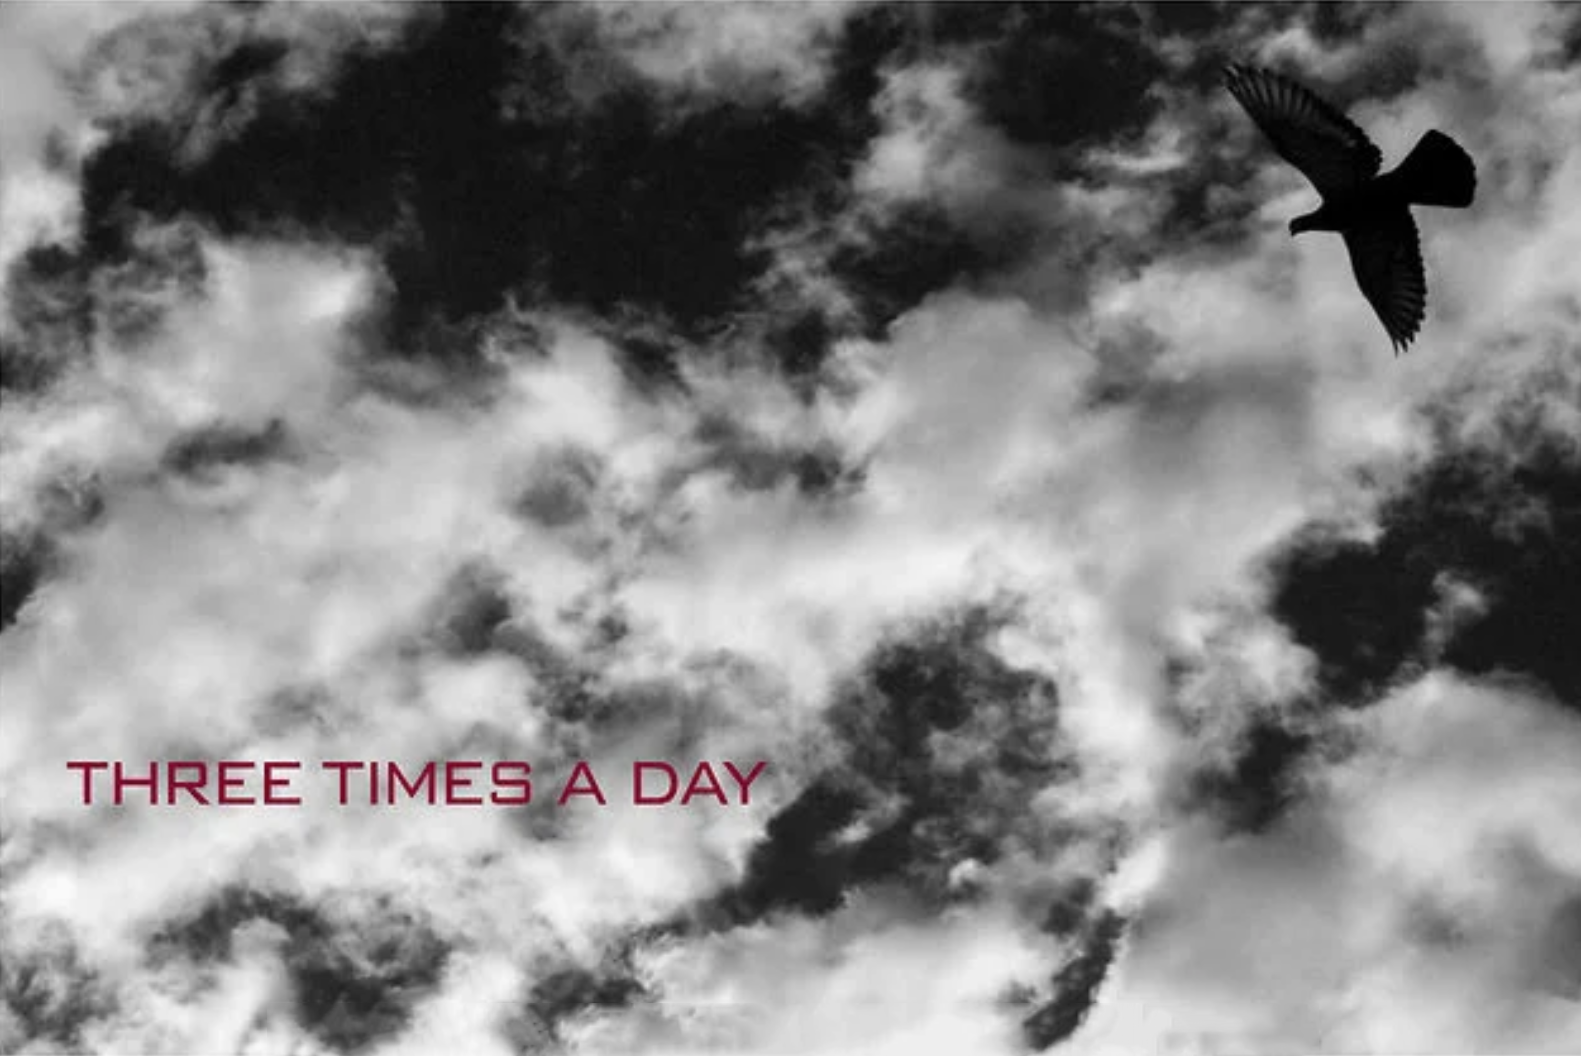 MULTIMEDIA PIECE: THREE TIMES A DAY